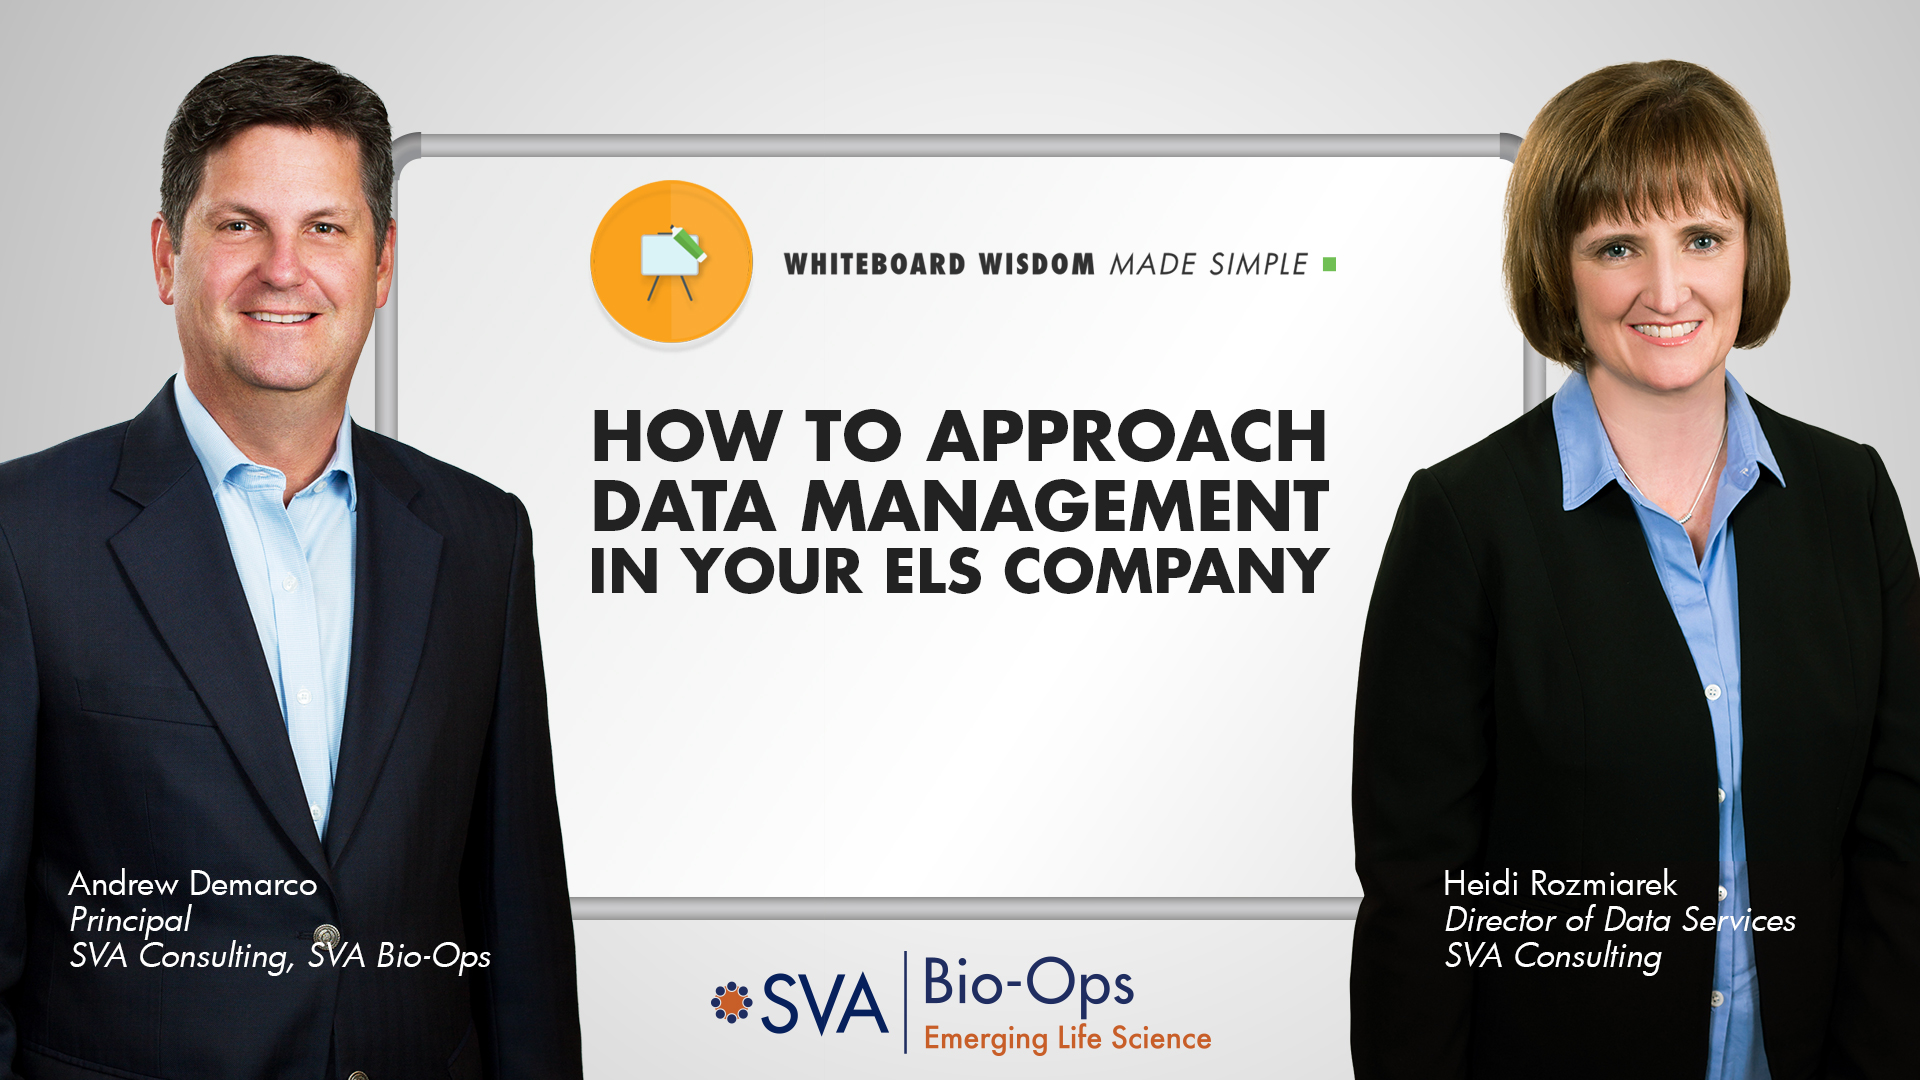 Whiteboard Wisdom Made Simple: How to Approach Data Management in Your ELS Company